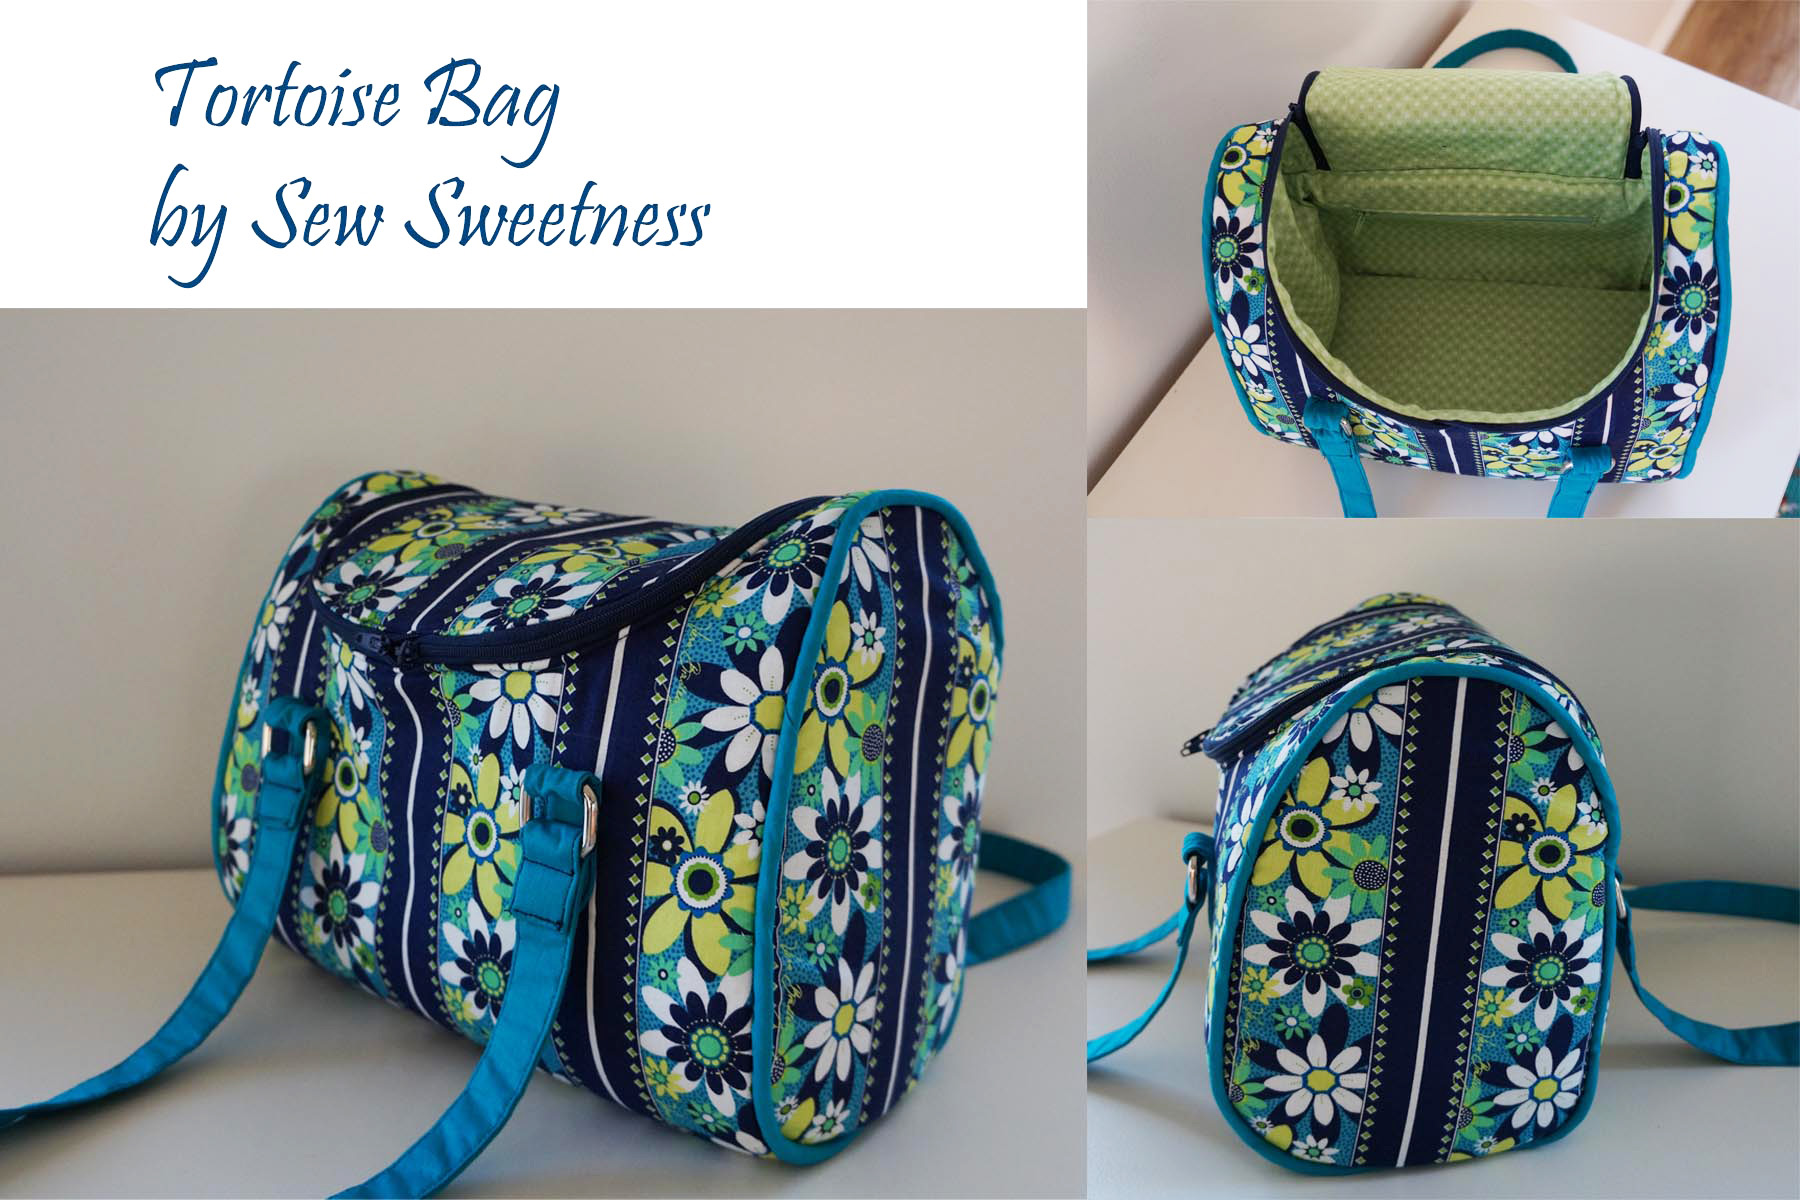 Sew Sweetness Tortoise Bag sewing pattern, sewn by Fiona